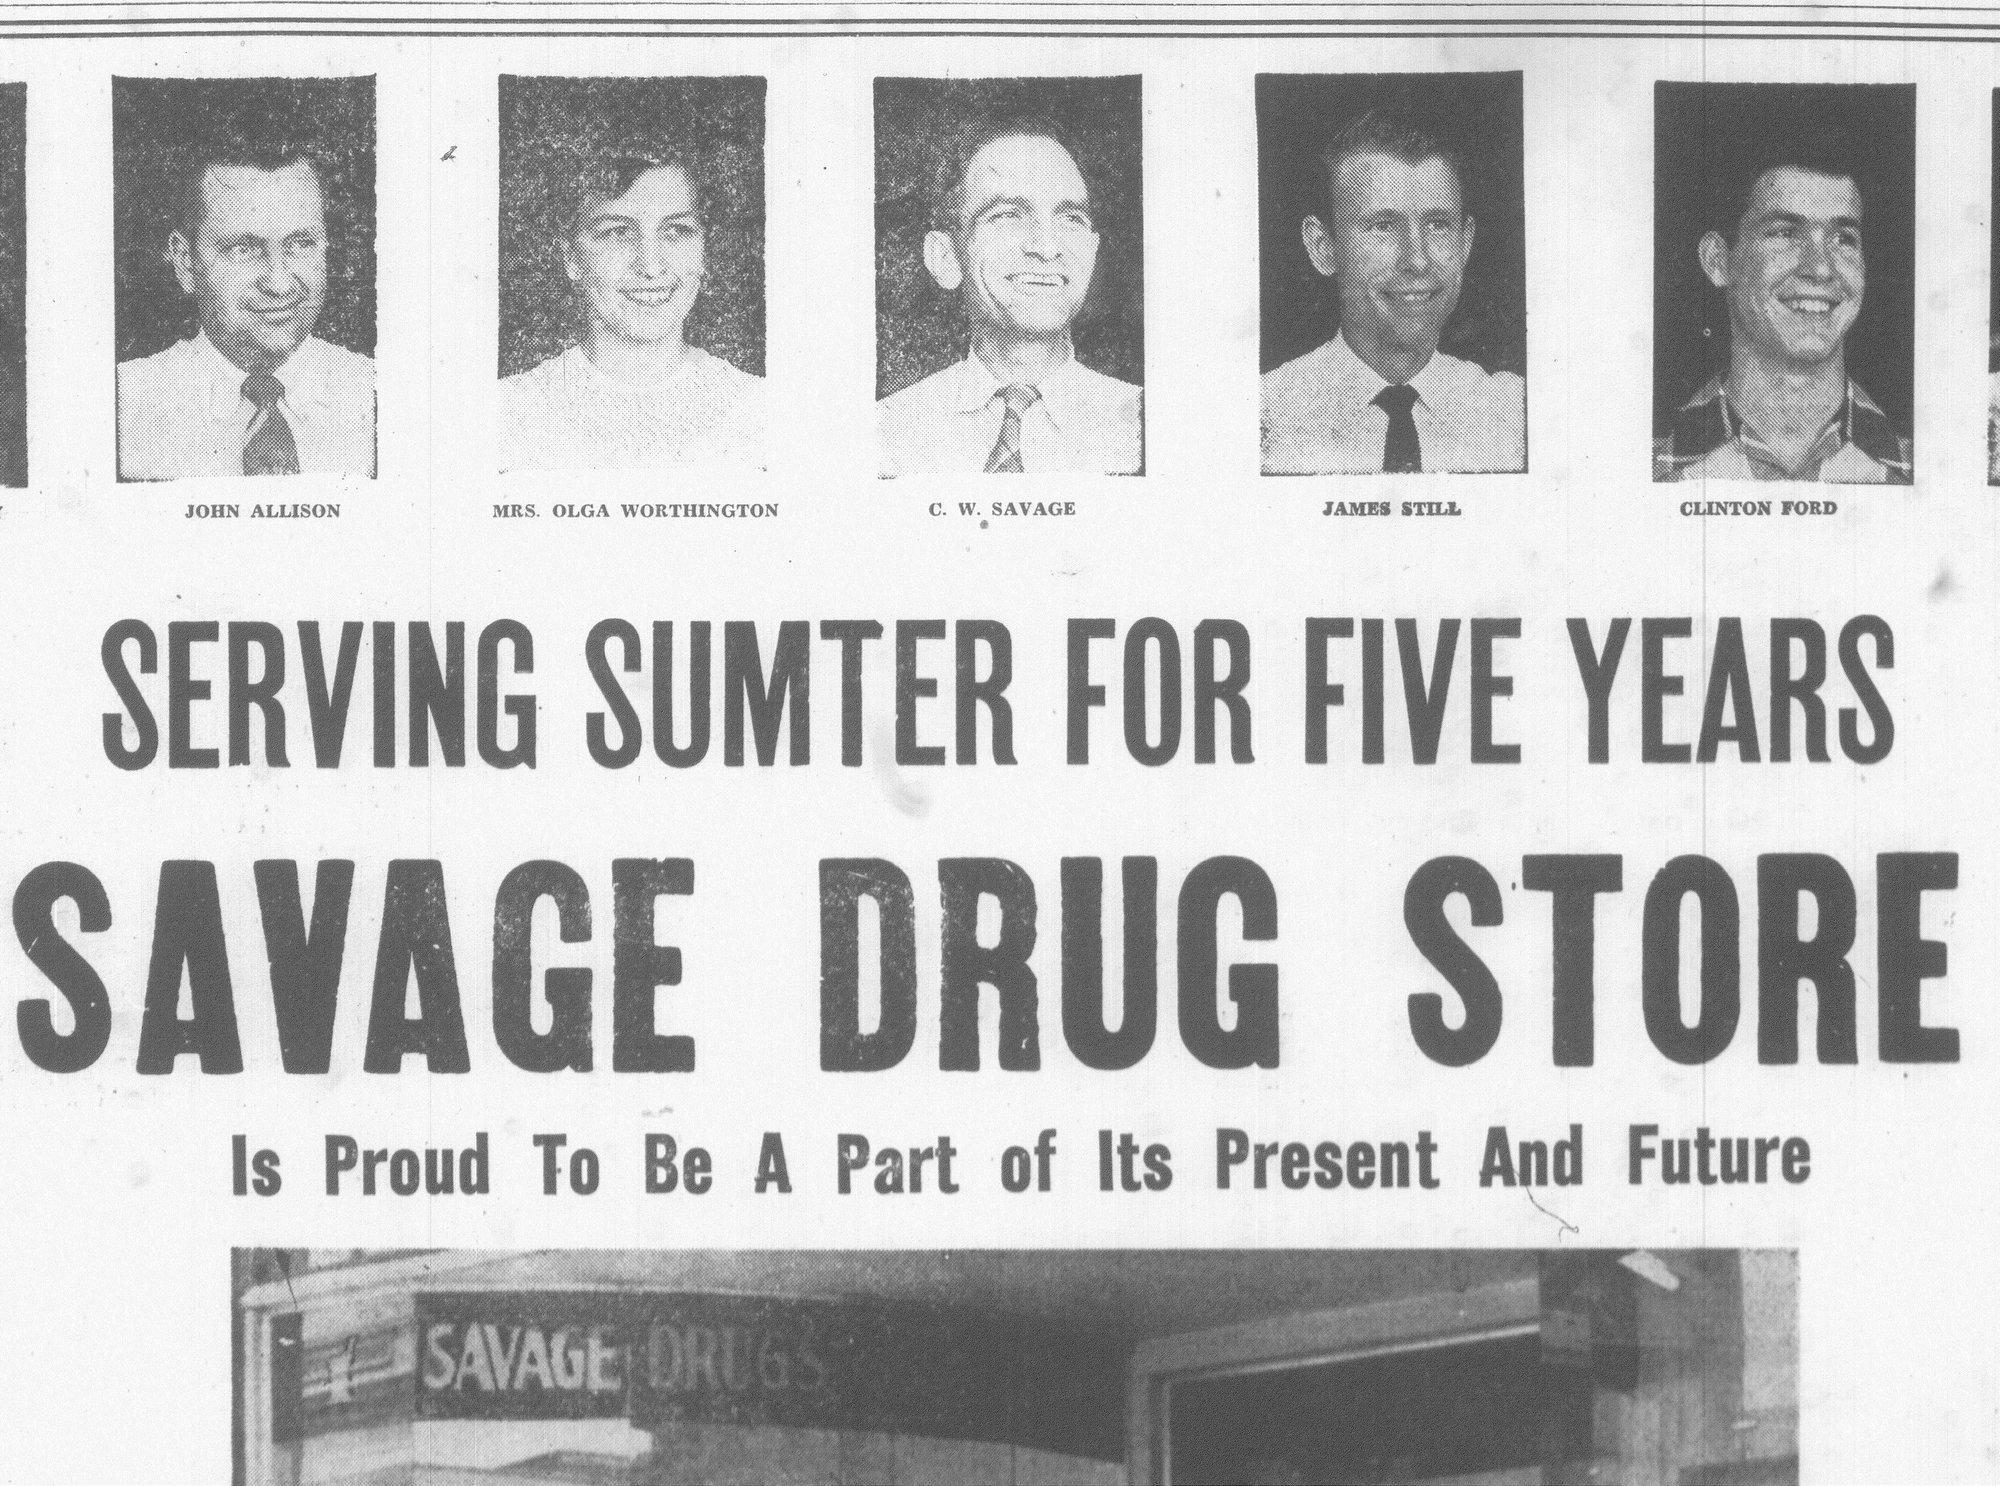 Savage Drug Store celebrated being open for five years in 1950.